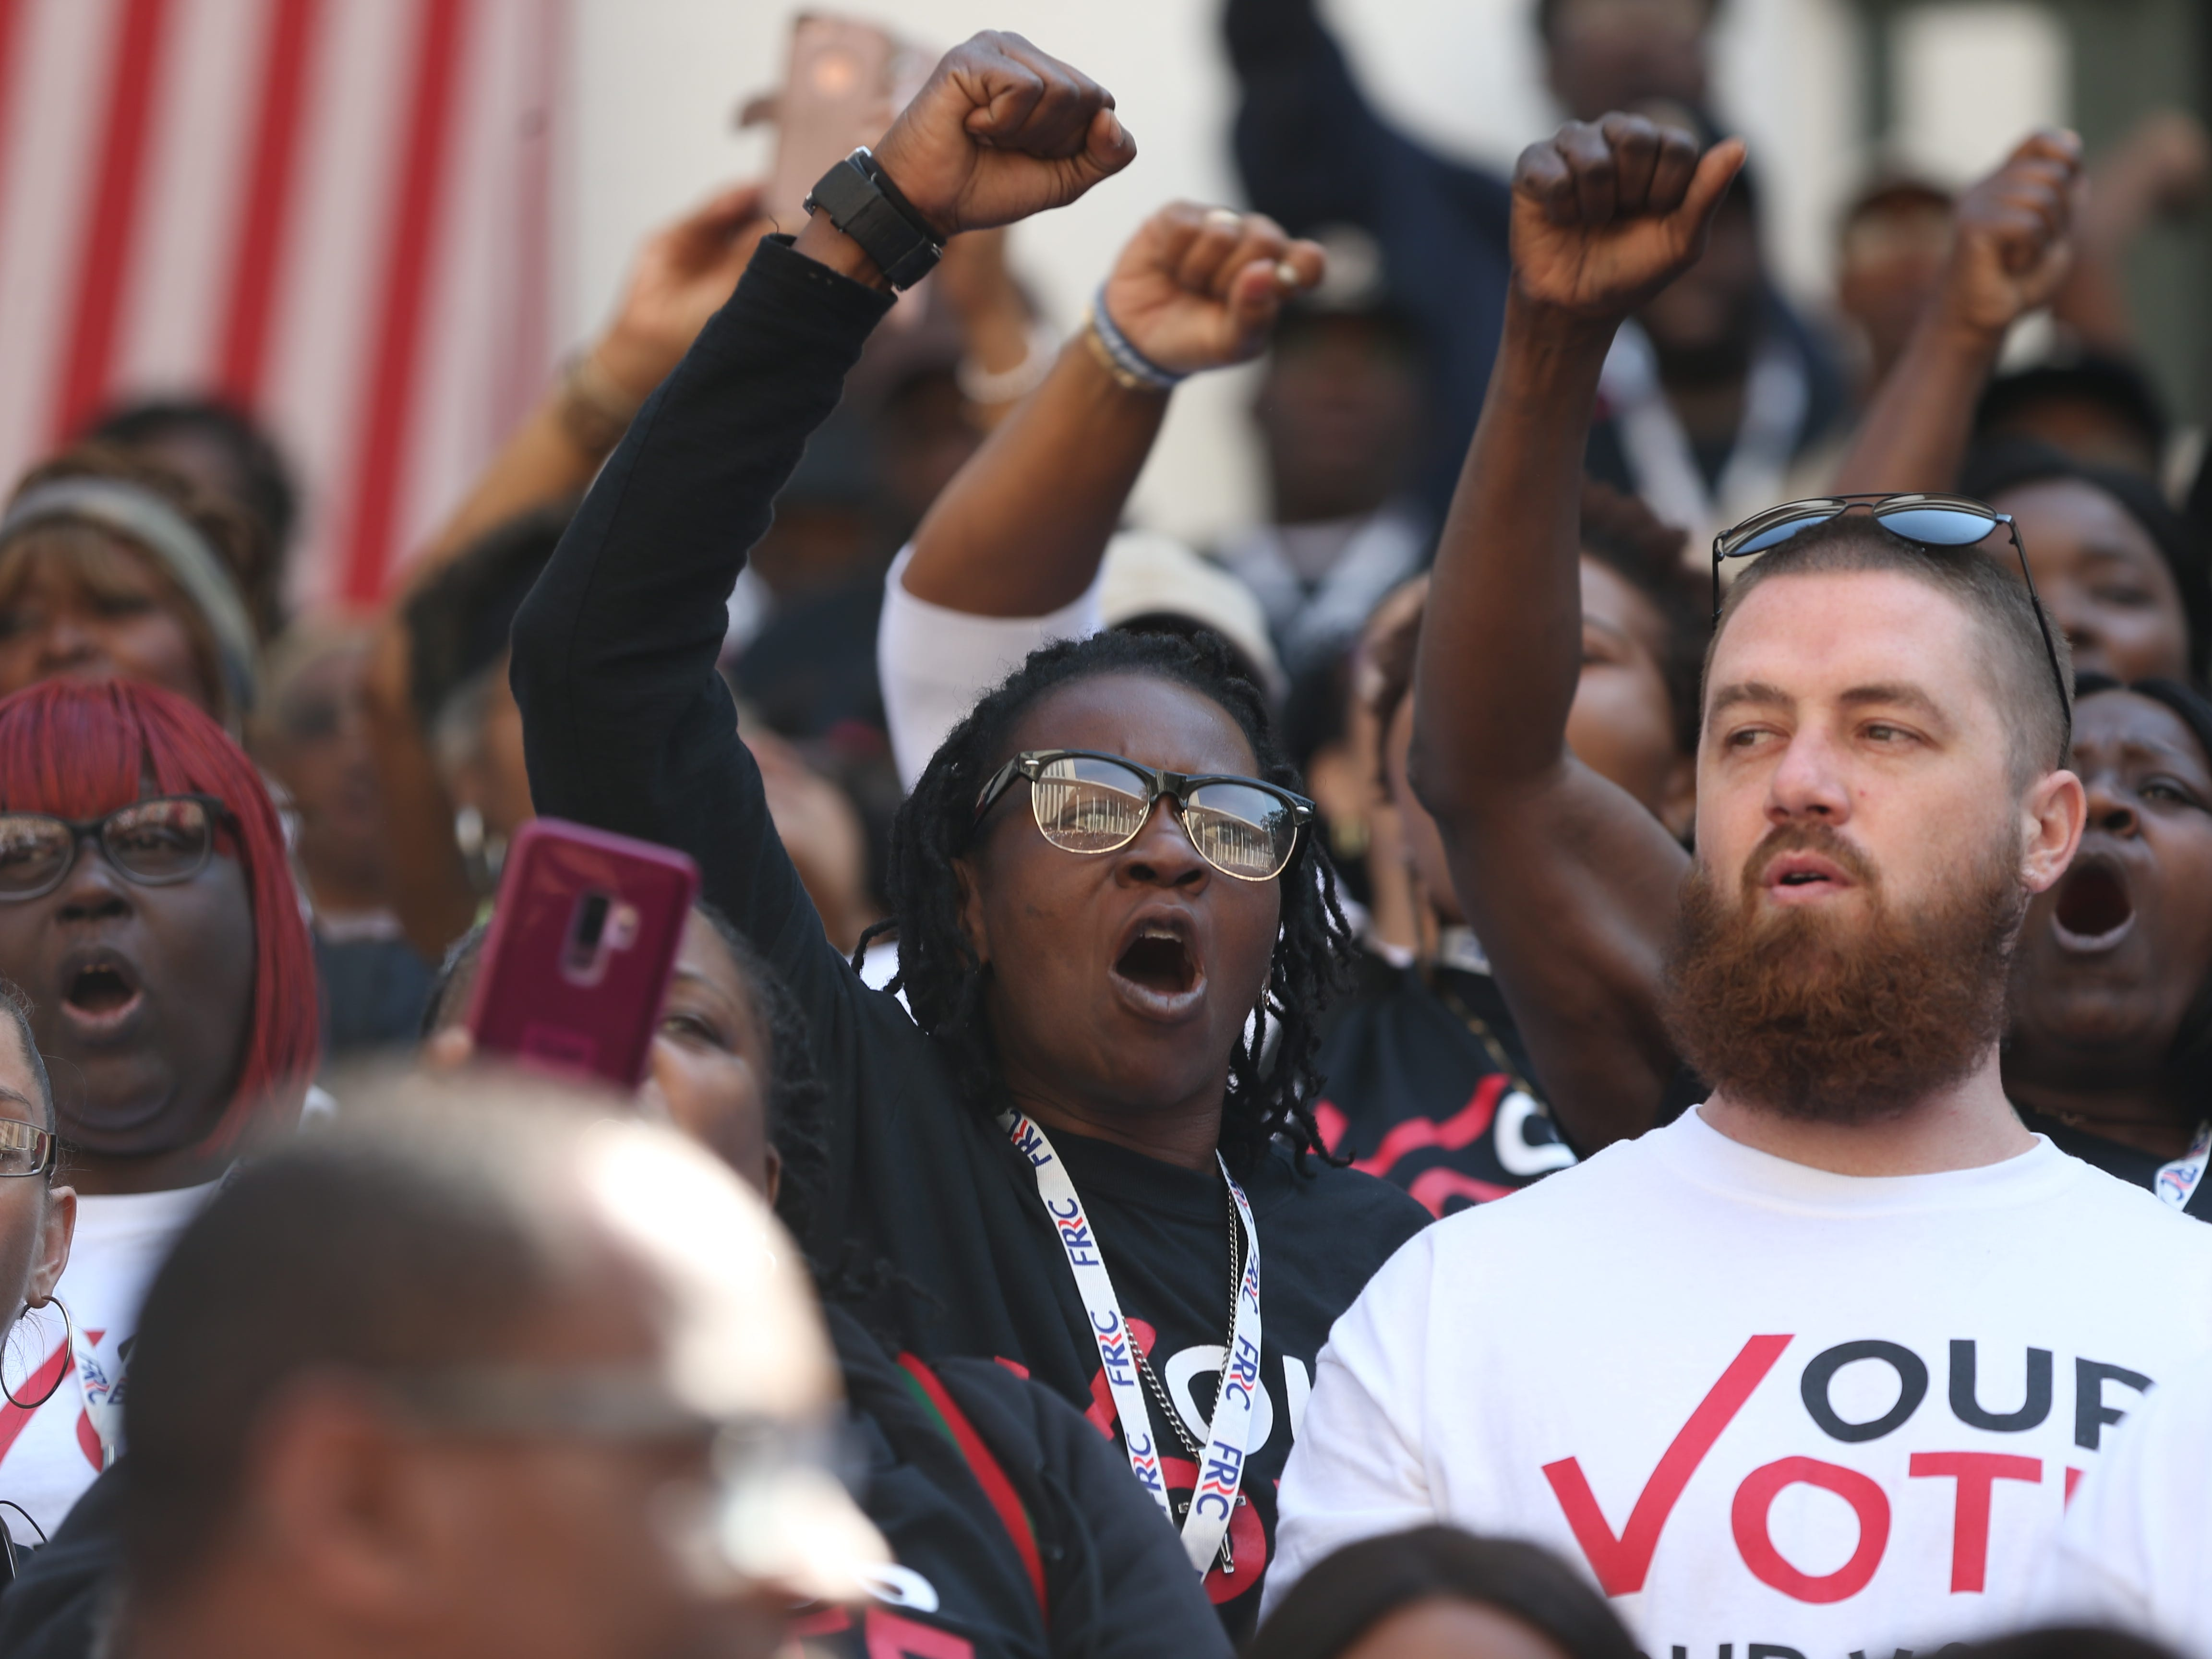 Five hundred Florida residents convicted of felonies whose voting rights were restored by vote in November, gathered in the courtyard of the Florida State Capitol Tuesday to rally before meeting with legislators to advocate for Amendment 4 legislation.